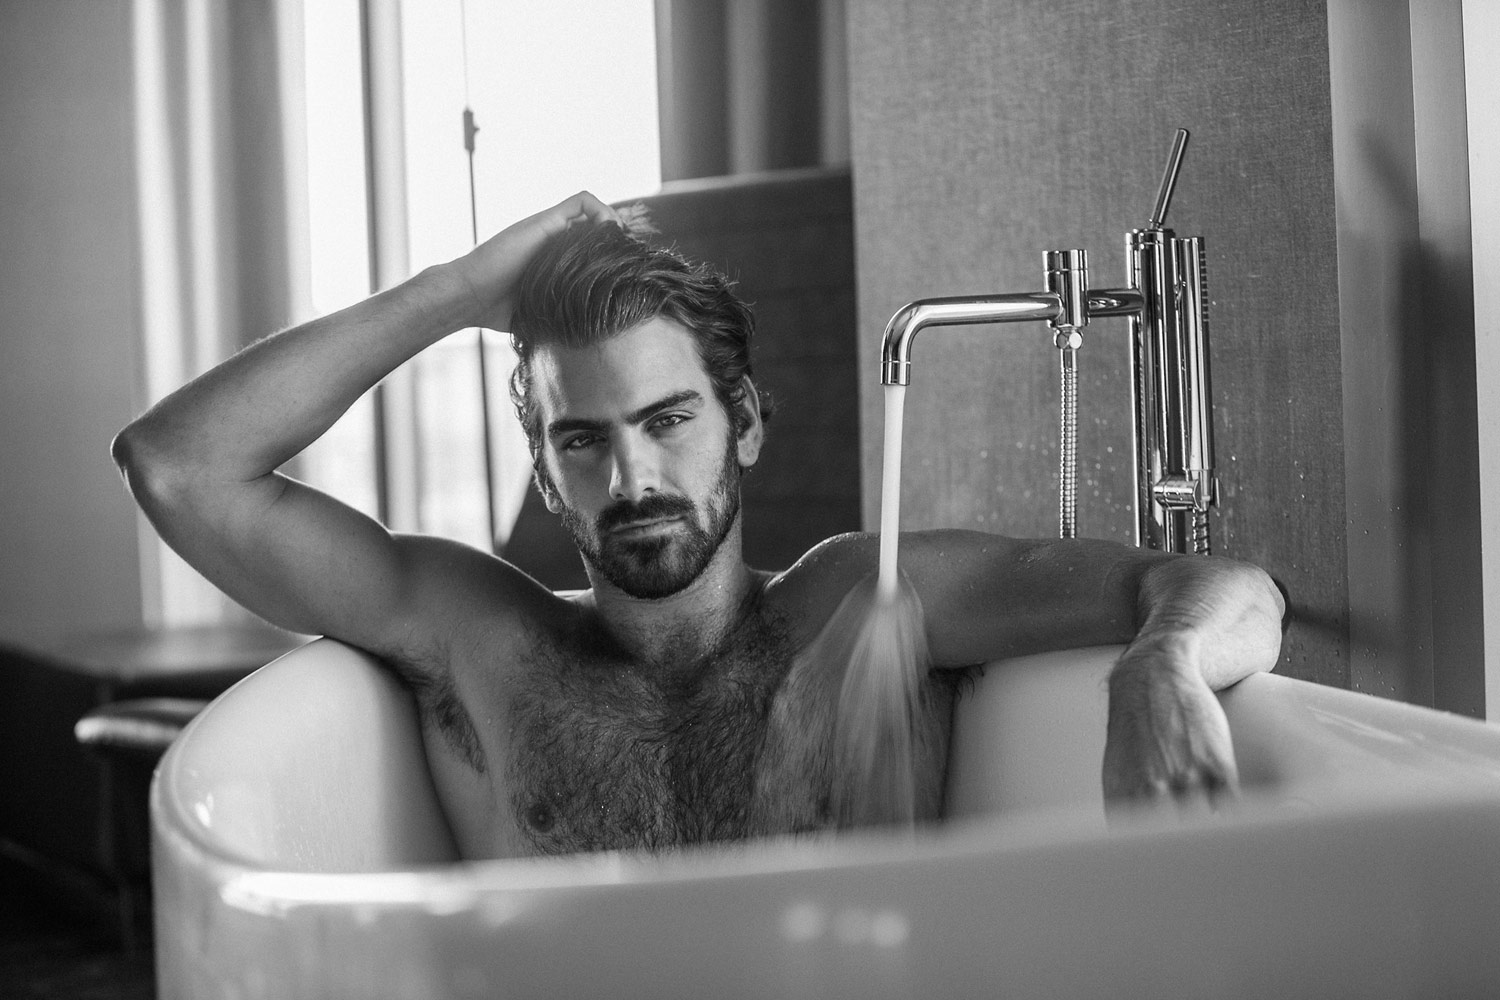 """Tub Time with Tate : Nyle Dimarco"", © Tate Tullier, Gonzales, LA, United States, People's Choice : Winner, PDN Curator Awards"